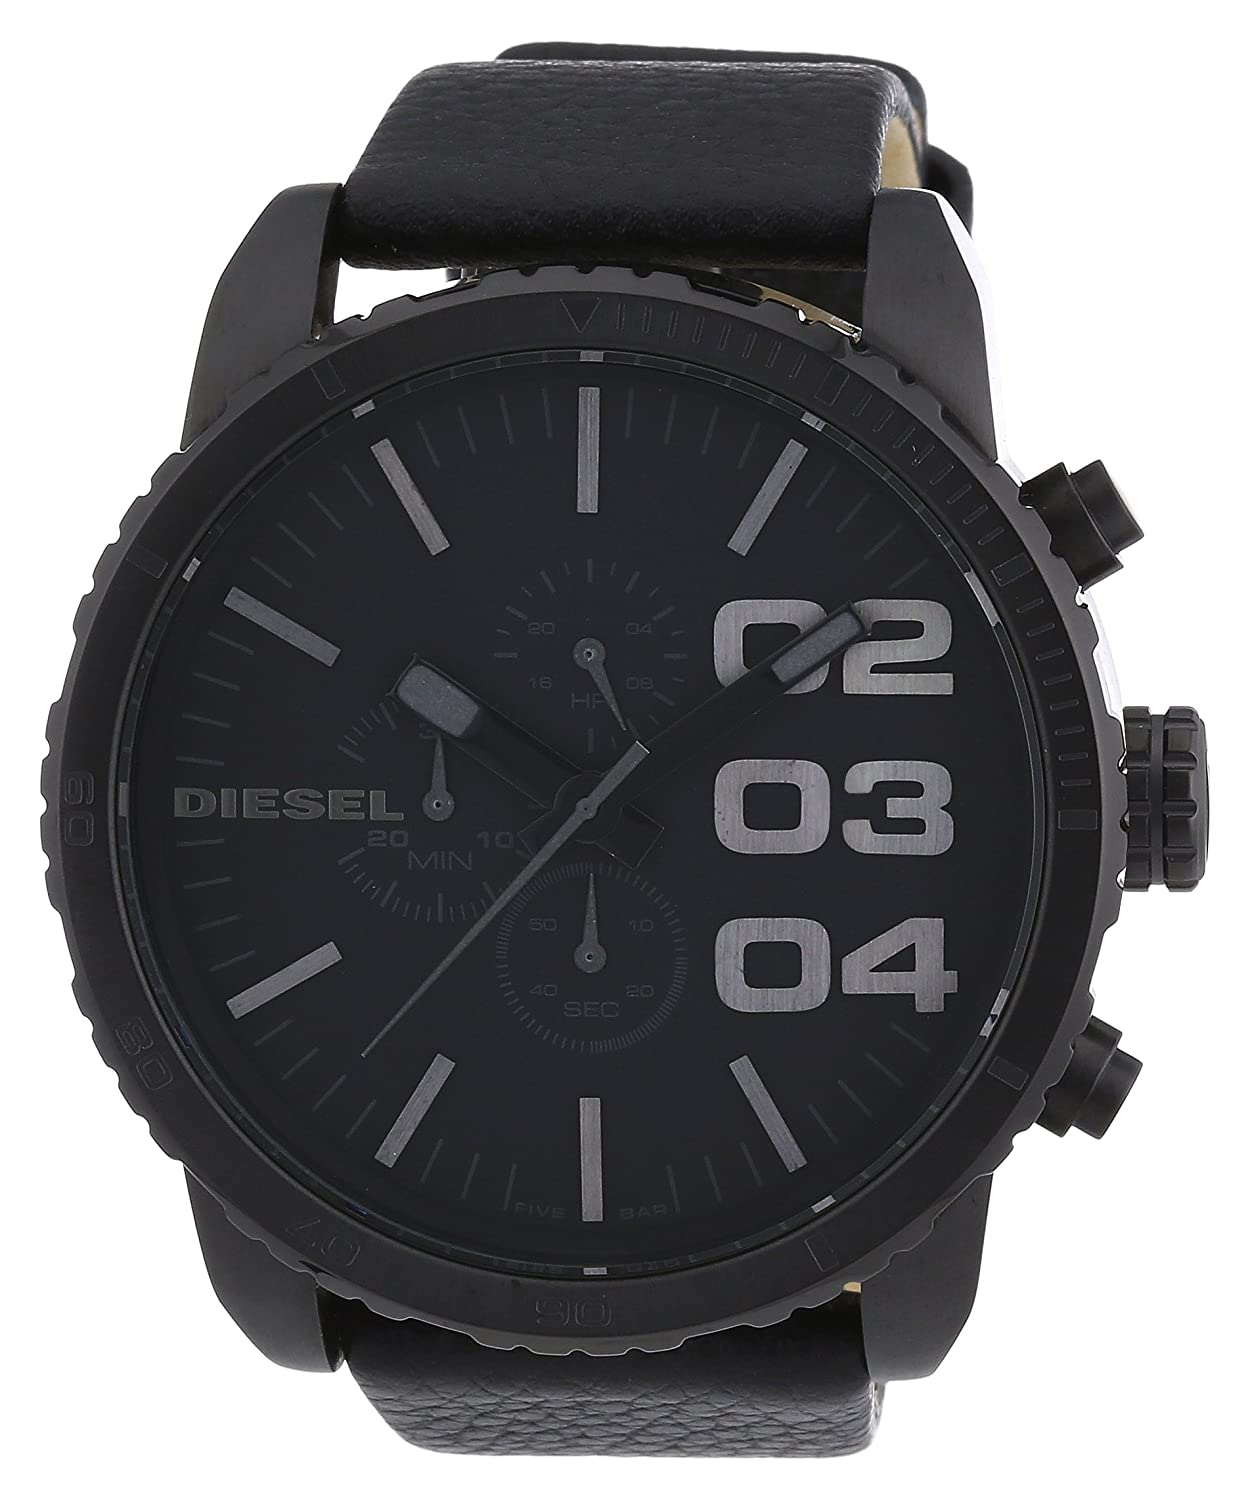 Amazon.com: Diesel Gents Stainless Steel Watch with Leather Strap: Watches